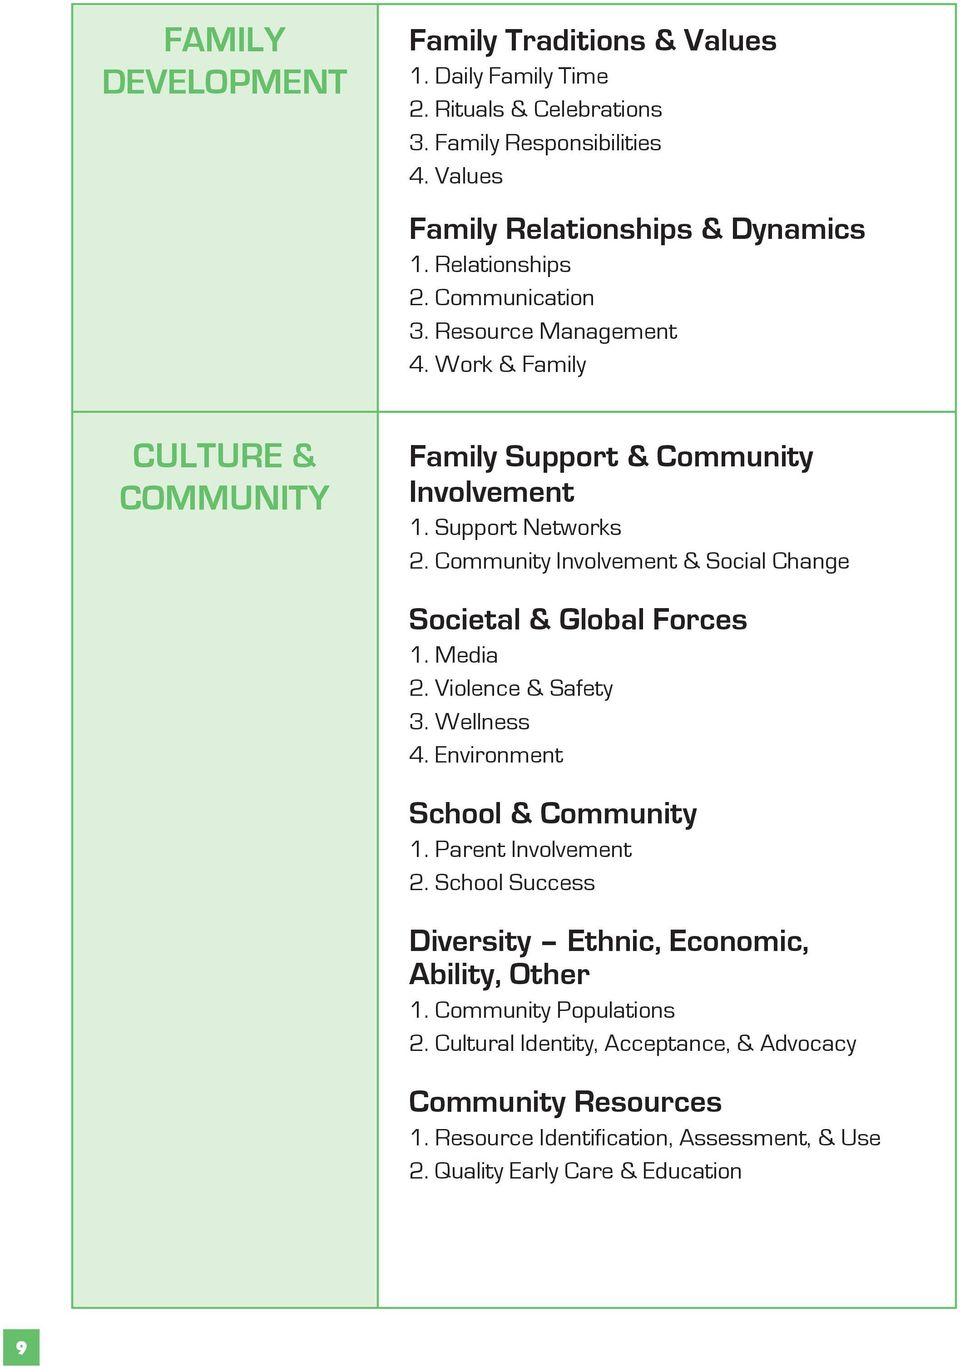 Community Involvement & Social Change Societal & Global Forces 1. Media 2. Violence & Safety 3. Wellness 4. Environment School & Community 1. Parent Involvement 2.